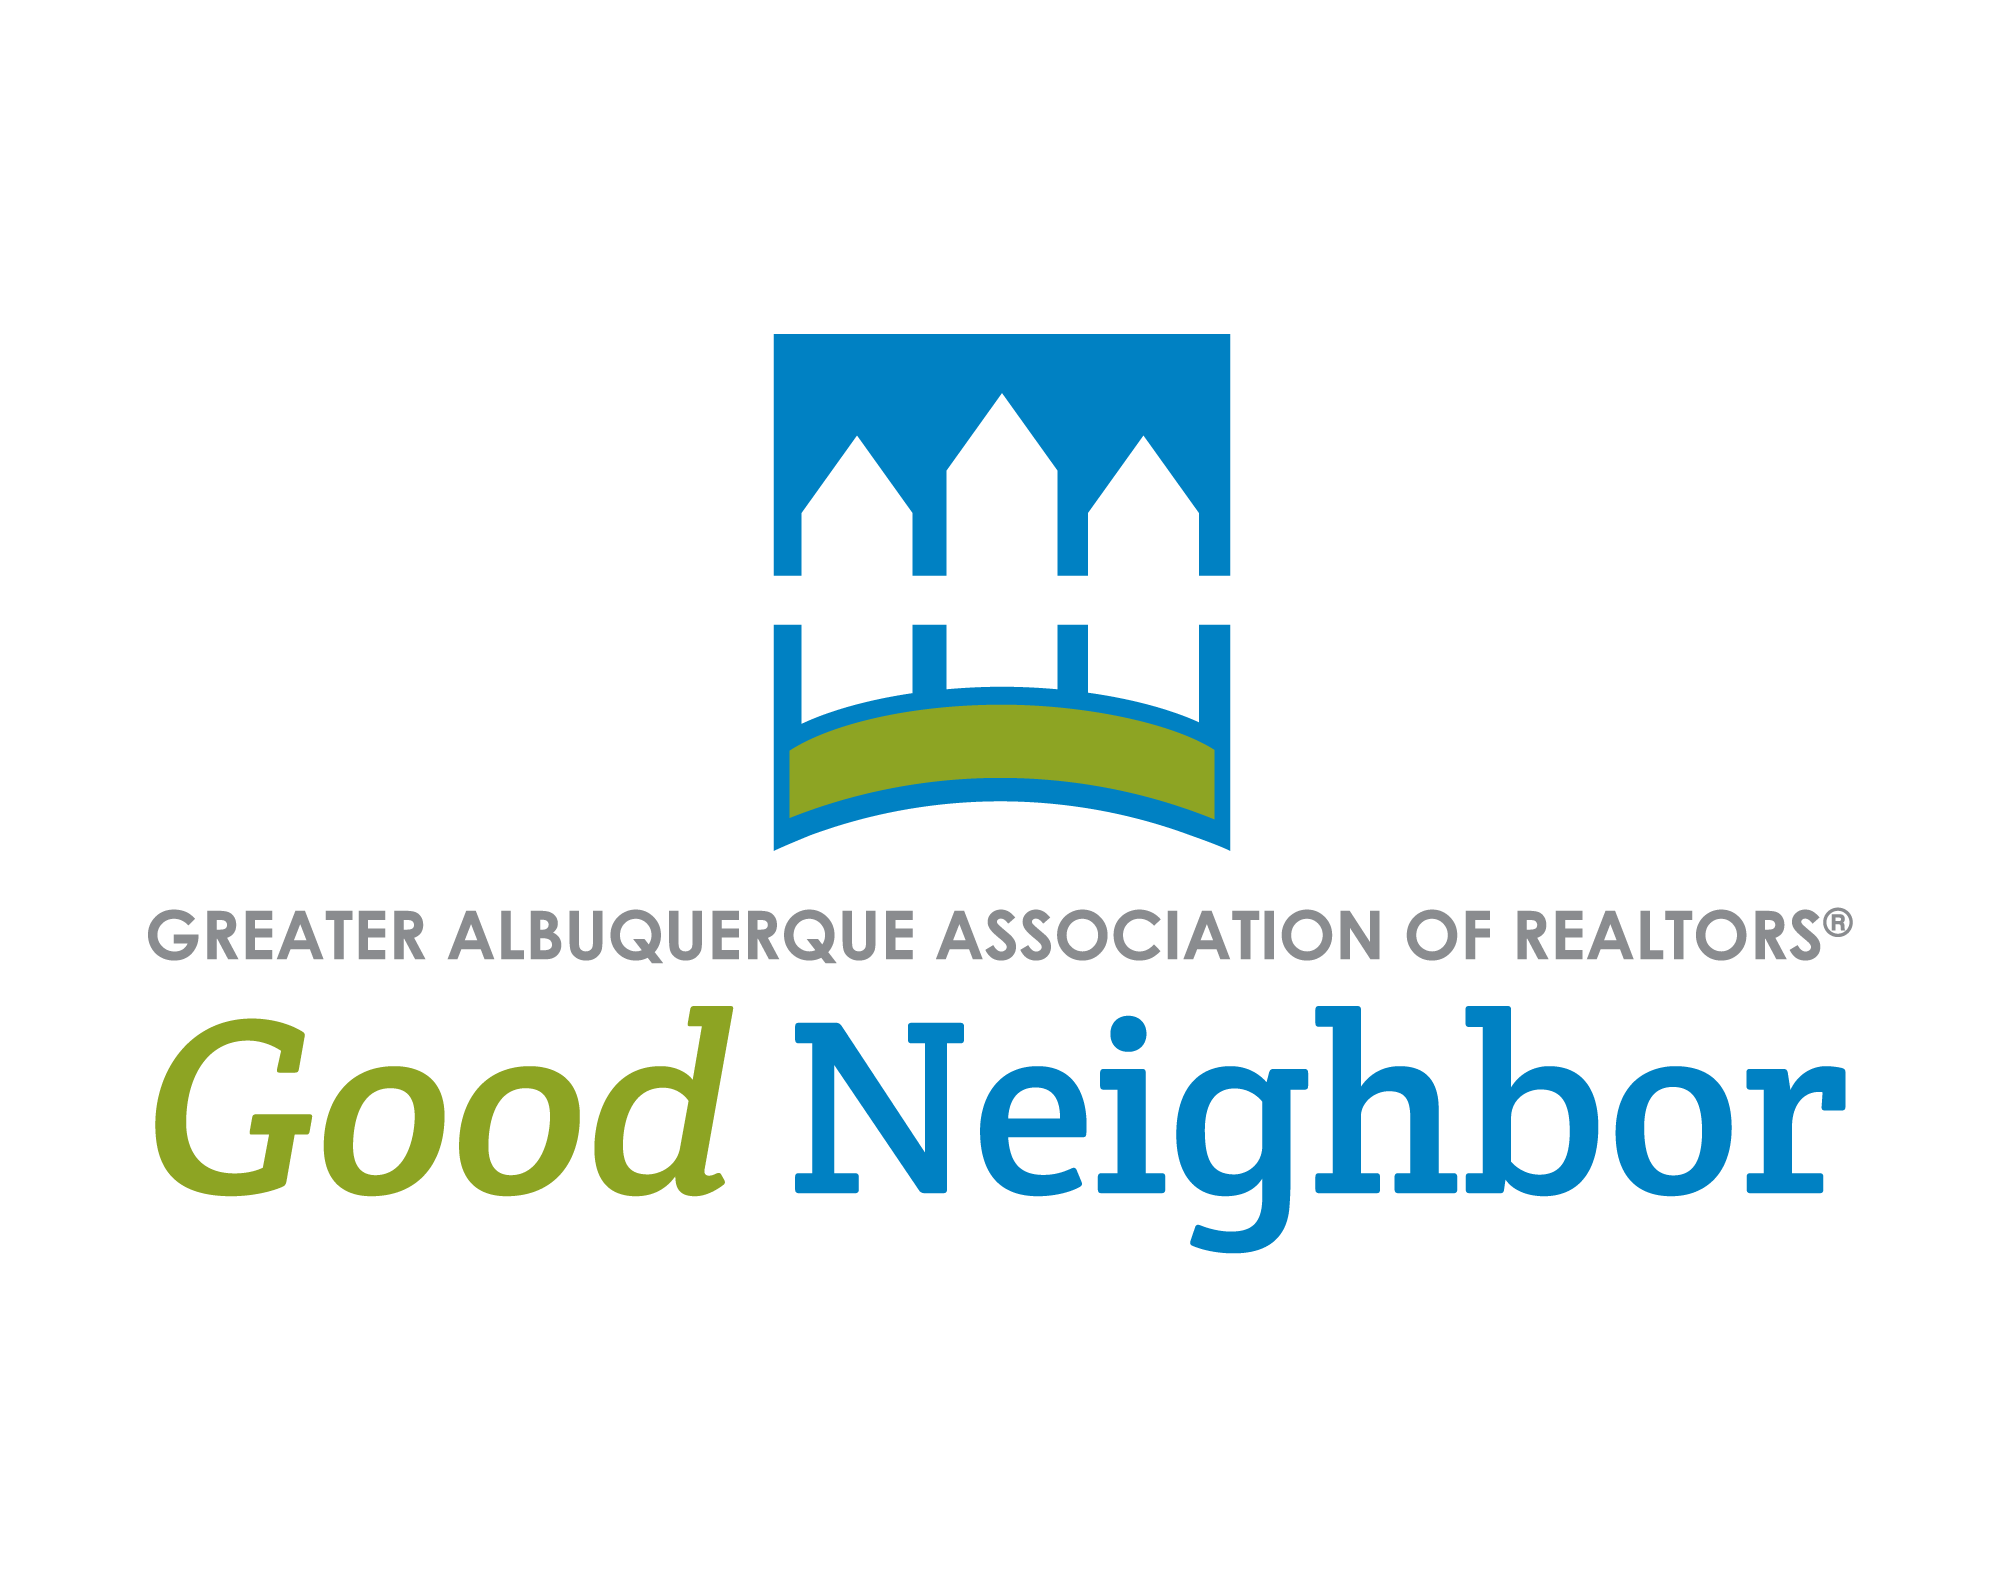 Do you know a Good Neighbor?